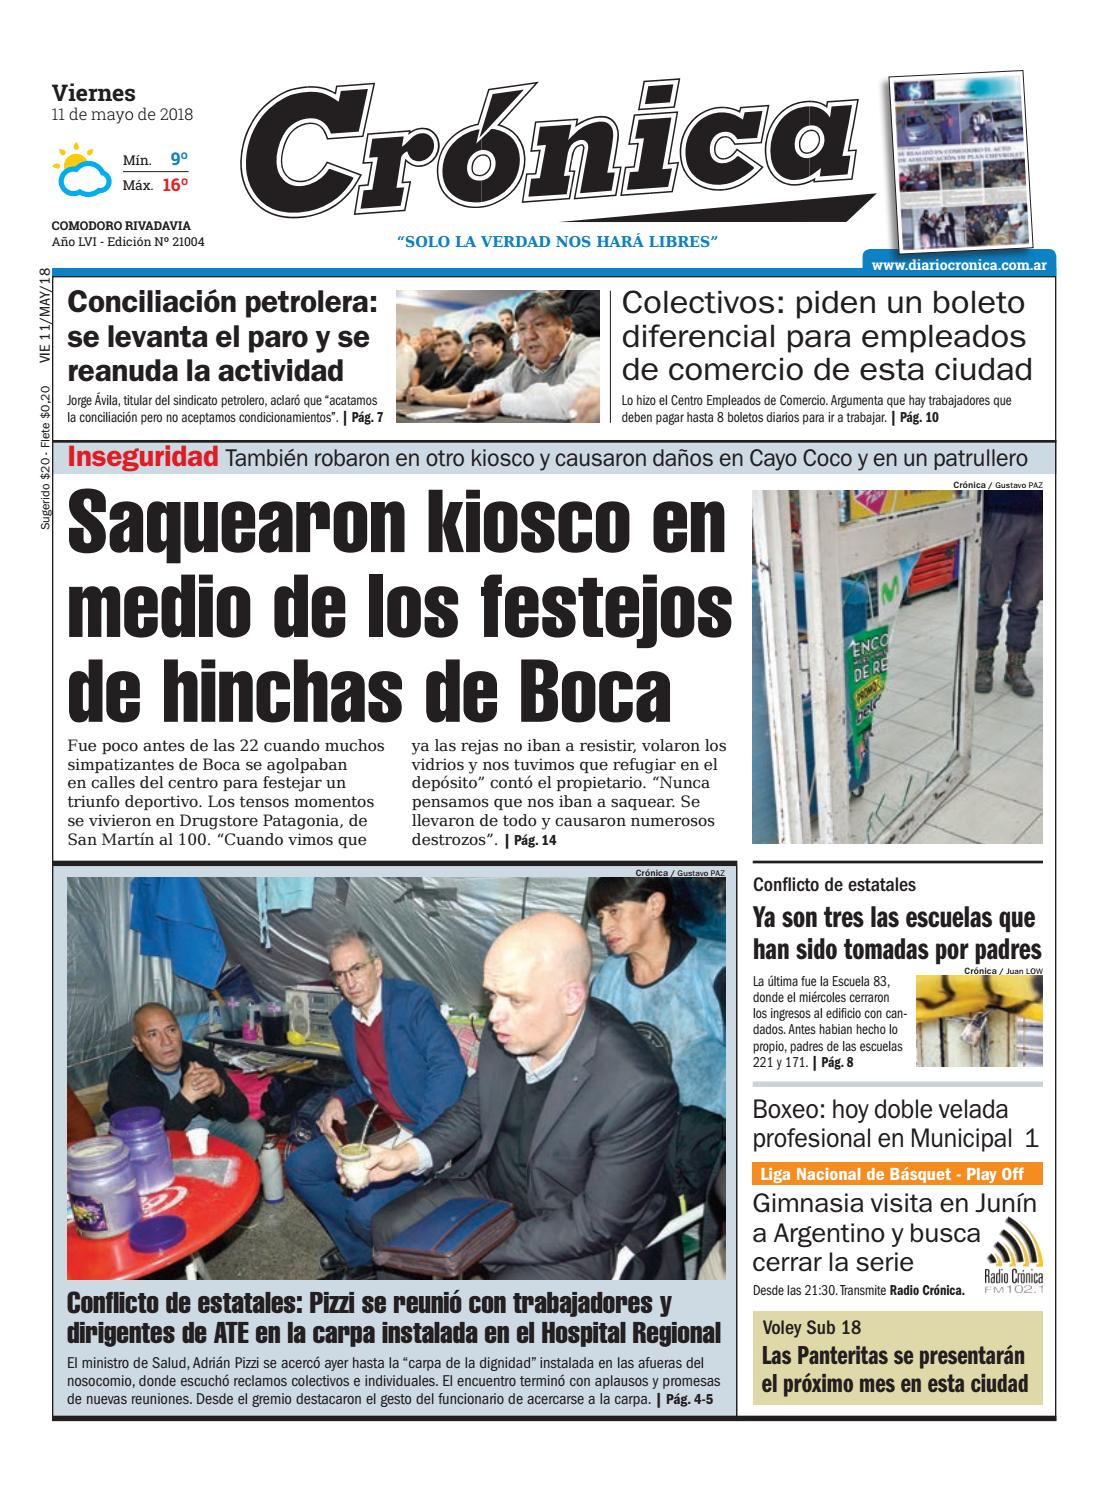 Diario cronica 11 05 2018 by Diario Crónica - issuu